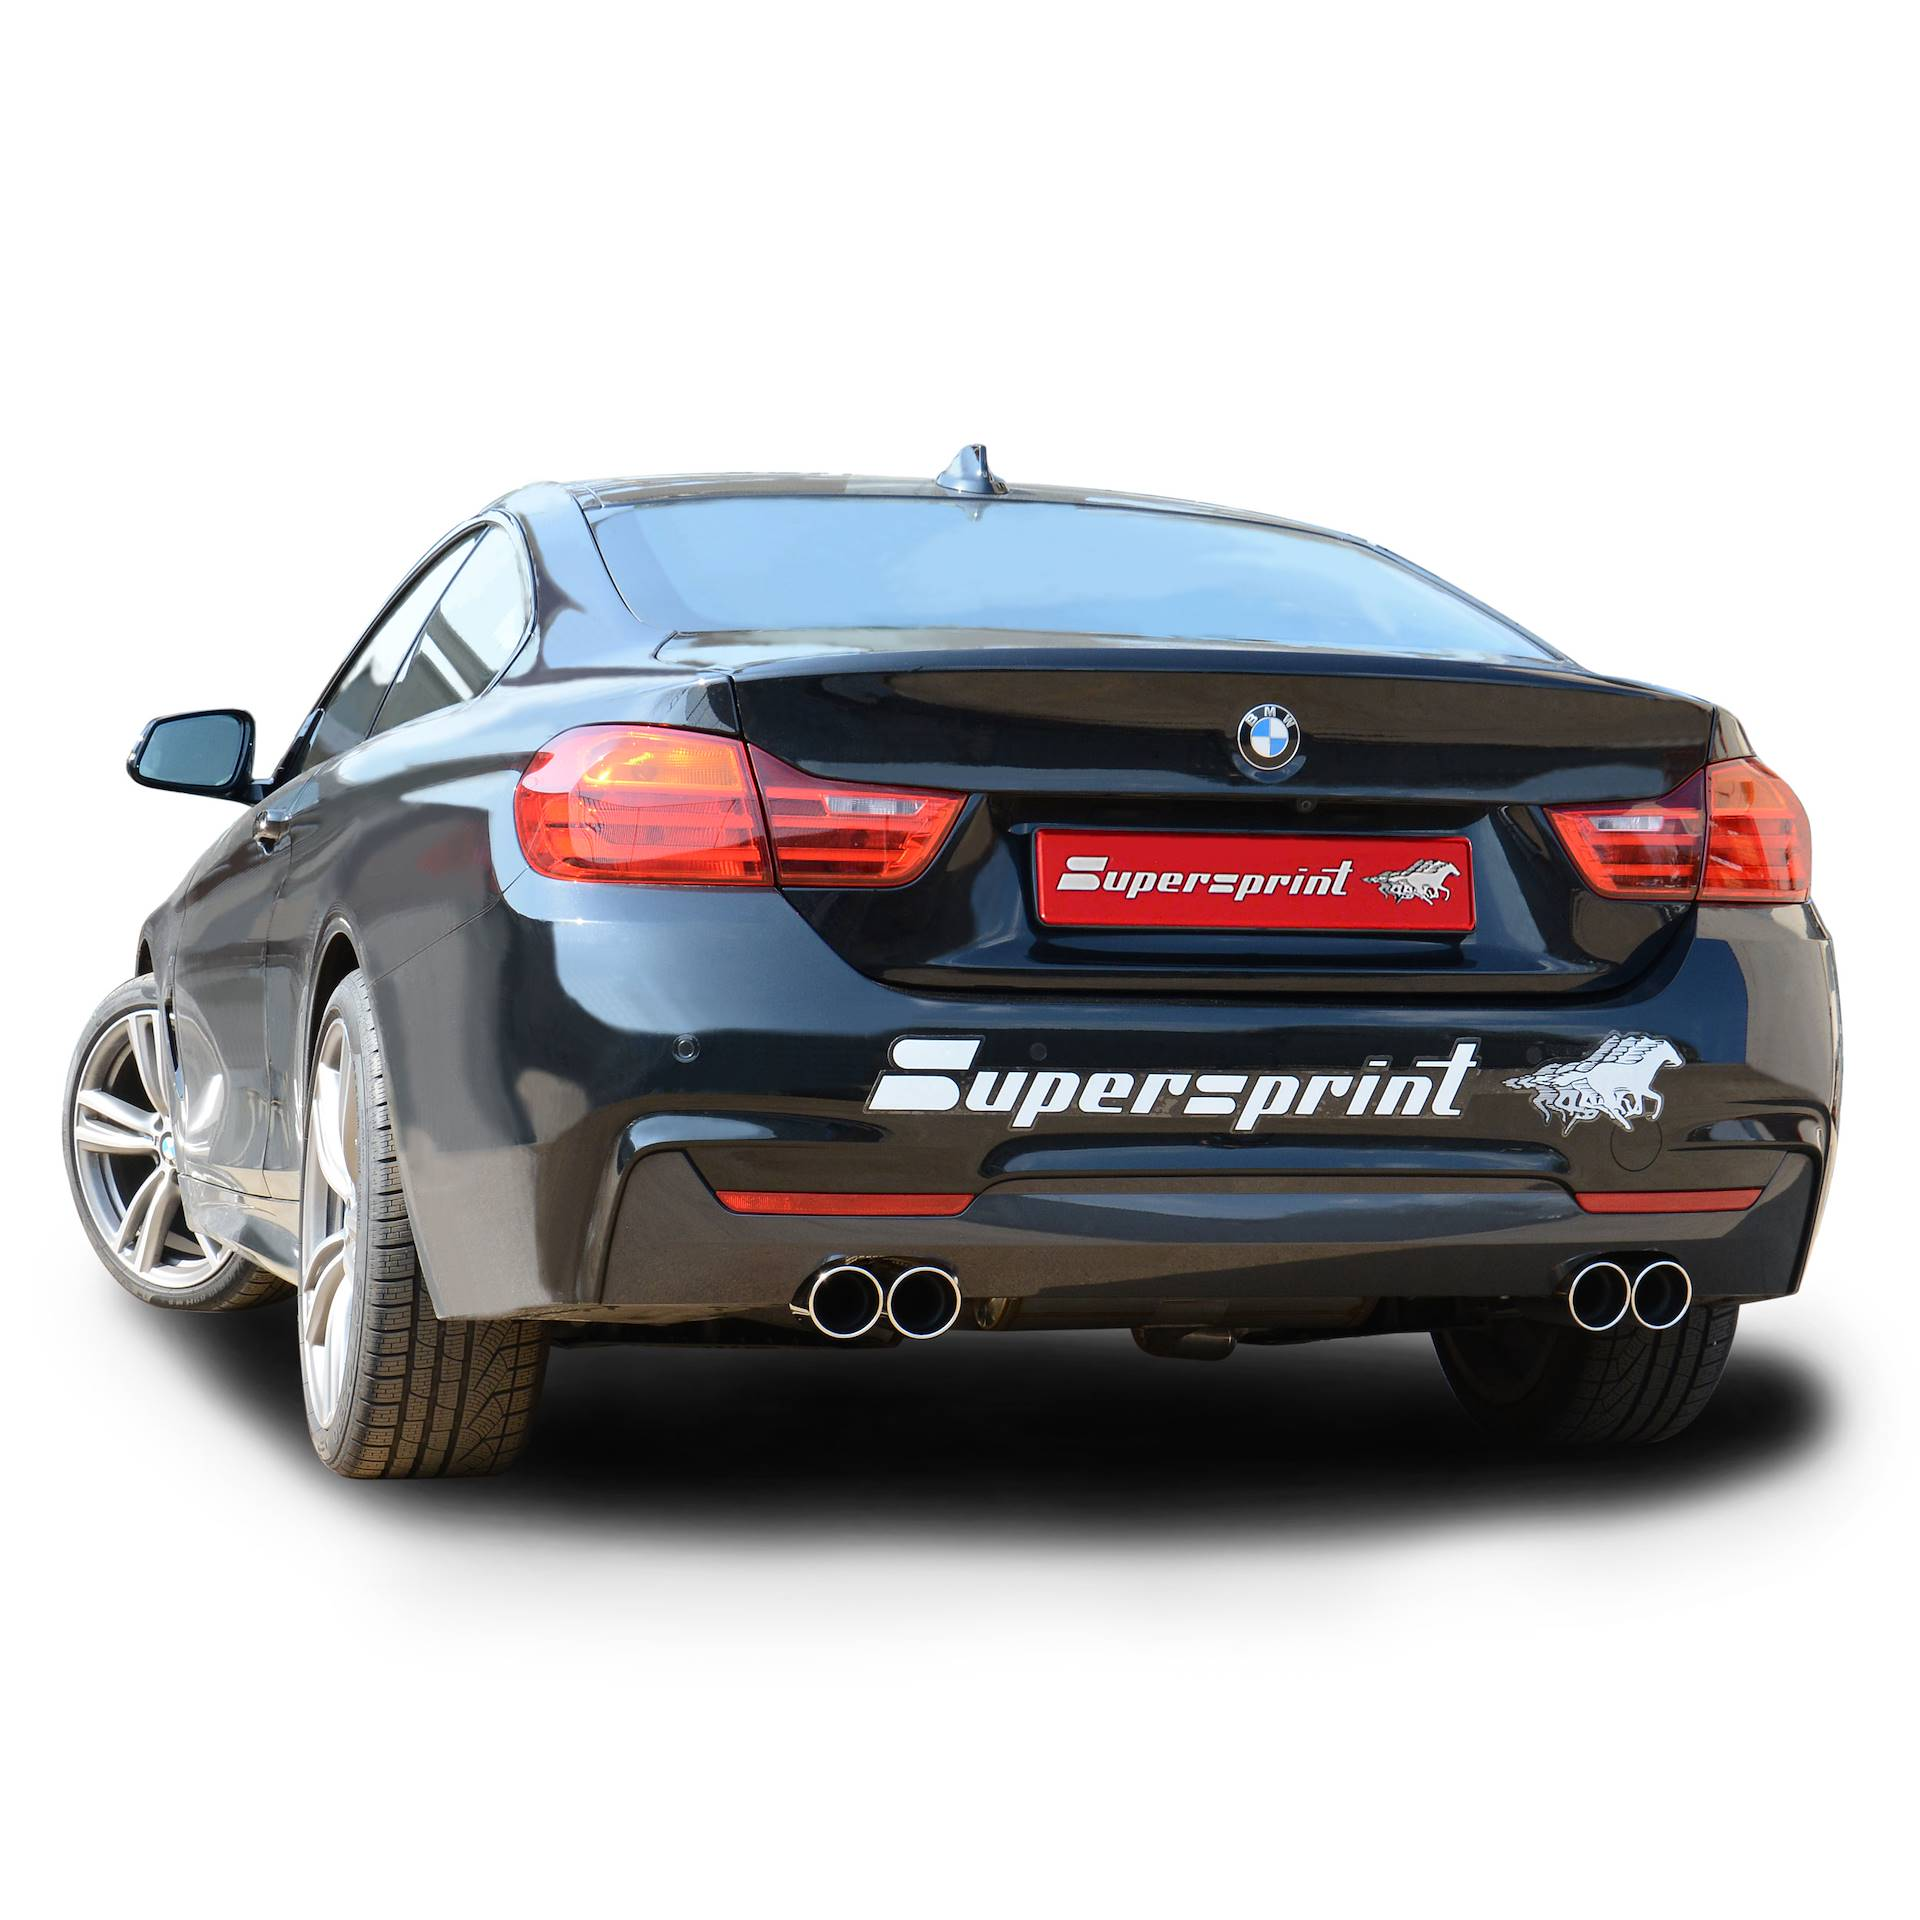 BMW - BMW F32 Coupè 430d xDrive (258 Hp) 2013 ->